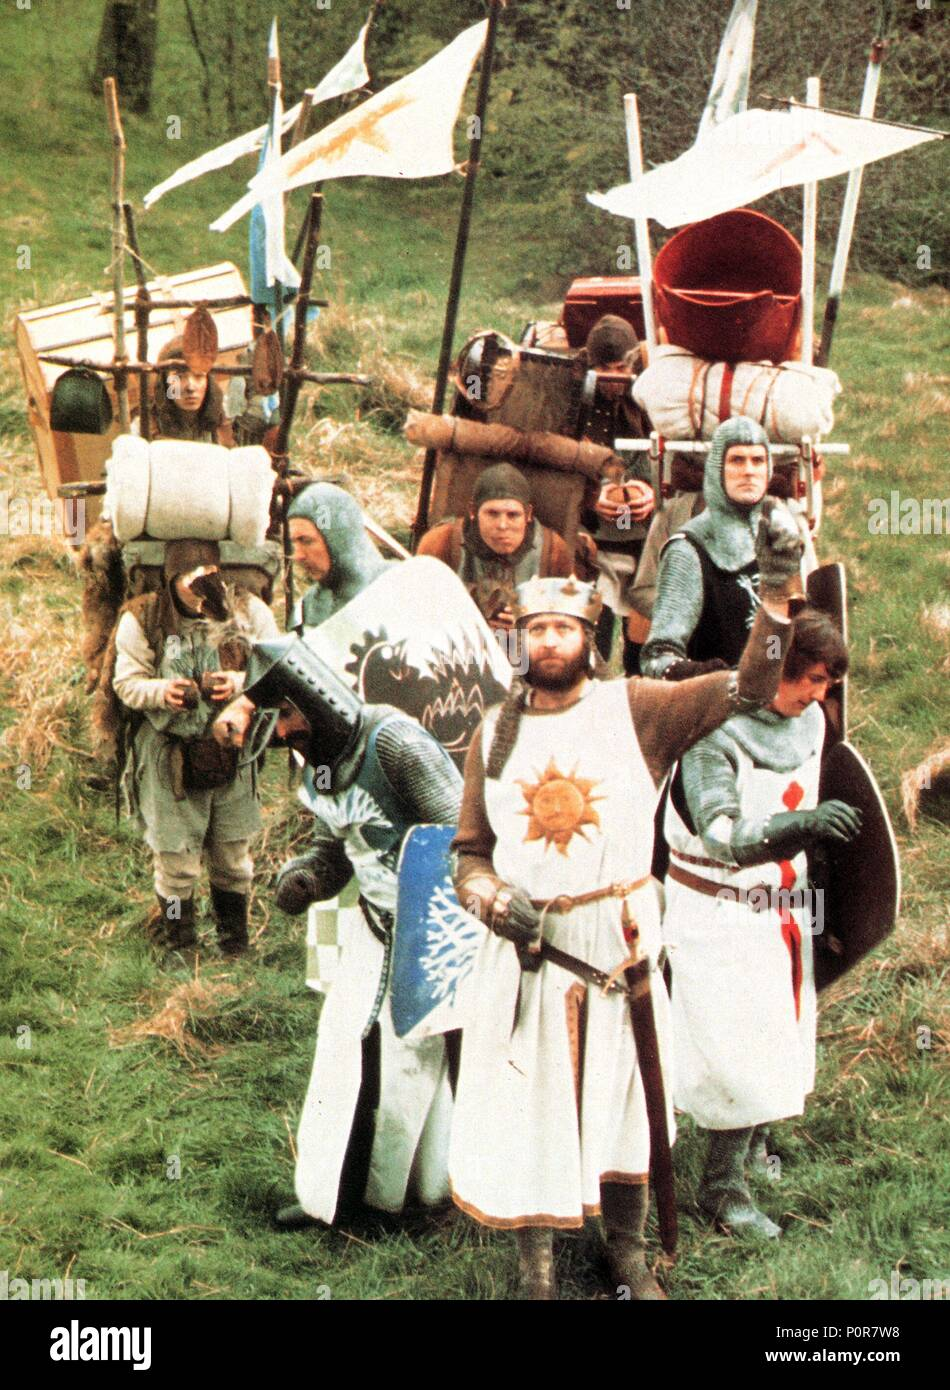 Monty Python And The Holy Grail (1975) Stock Photos ...